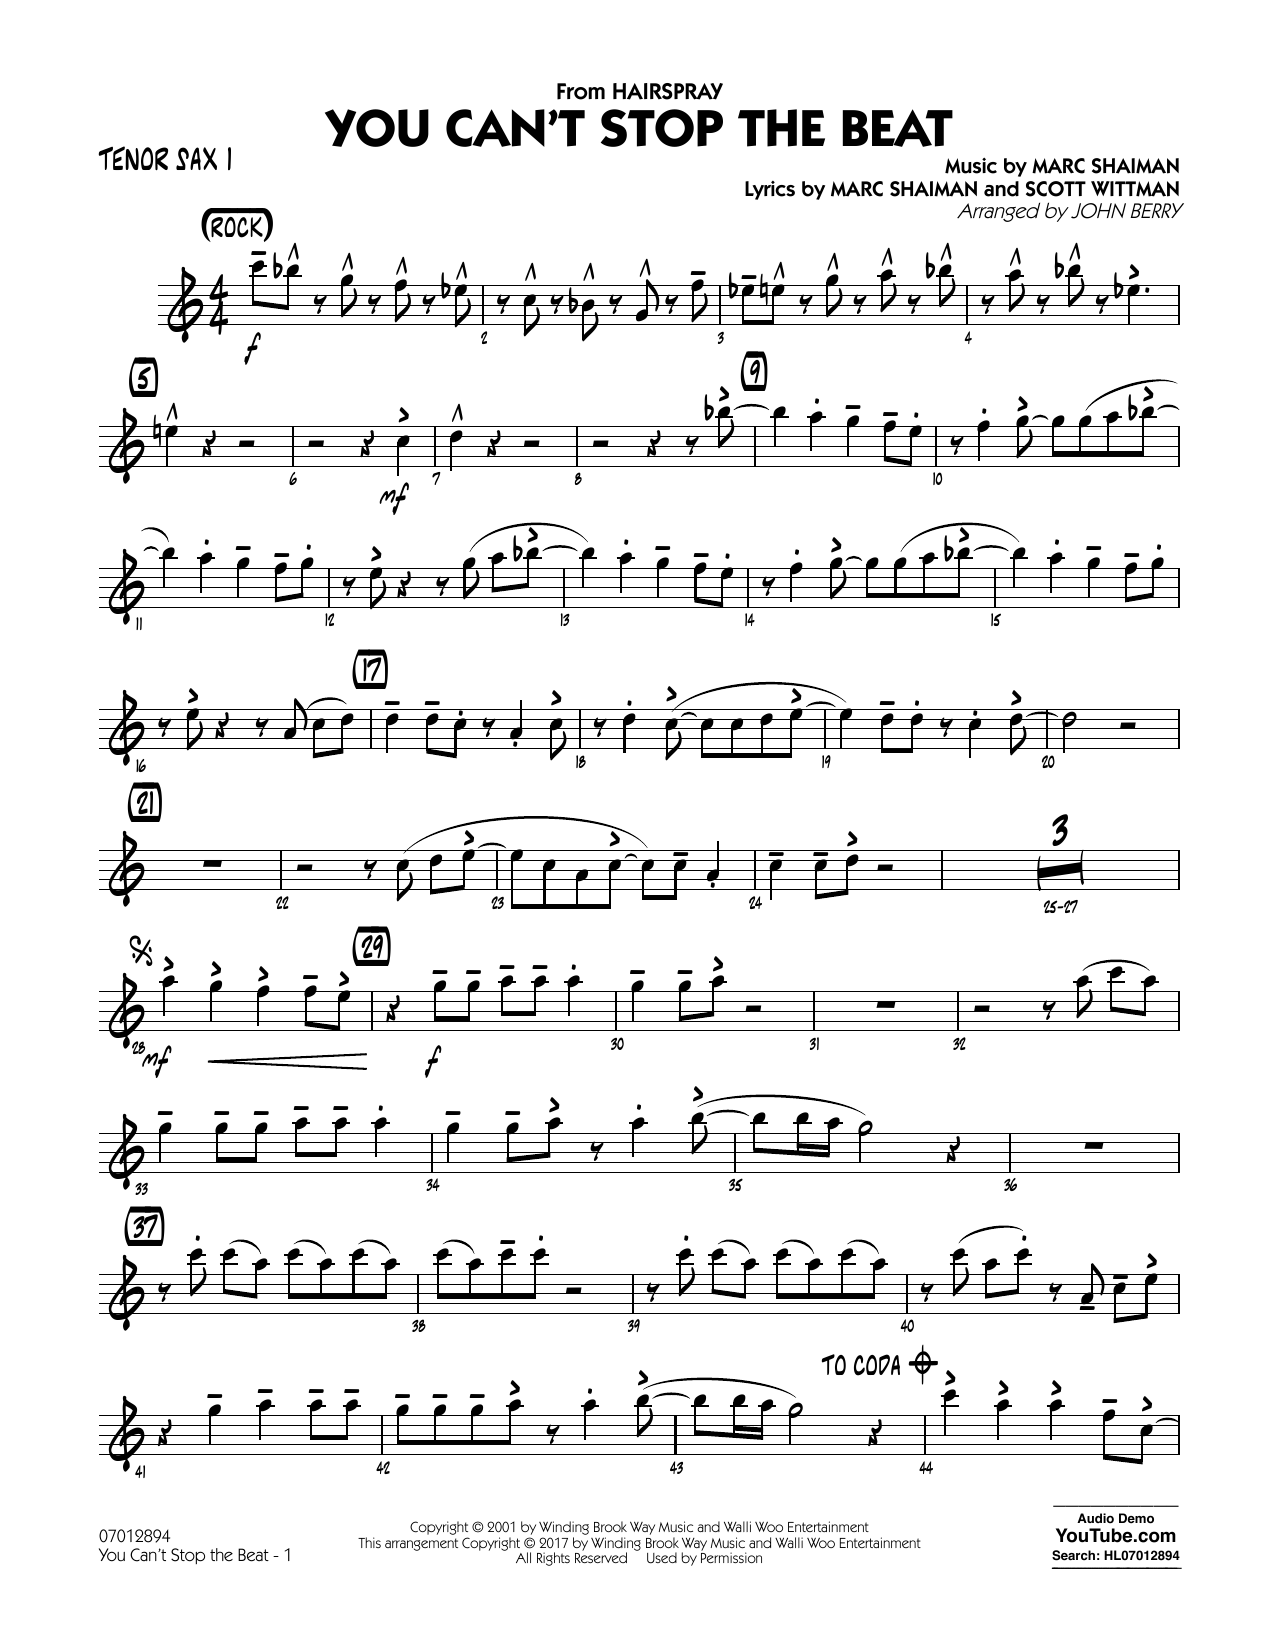 You Can't Stop the Beat (from Hairspray) - Tenor Sax 1 Sheet Music